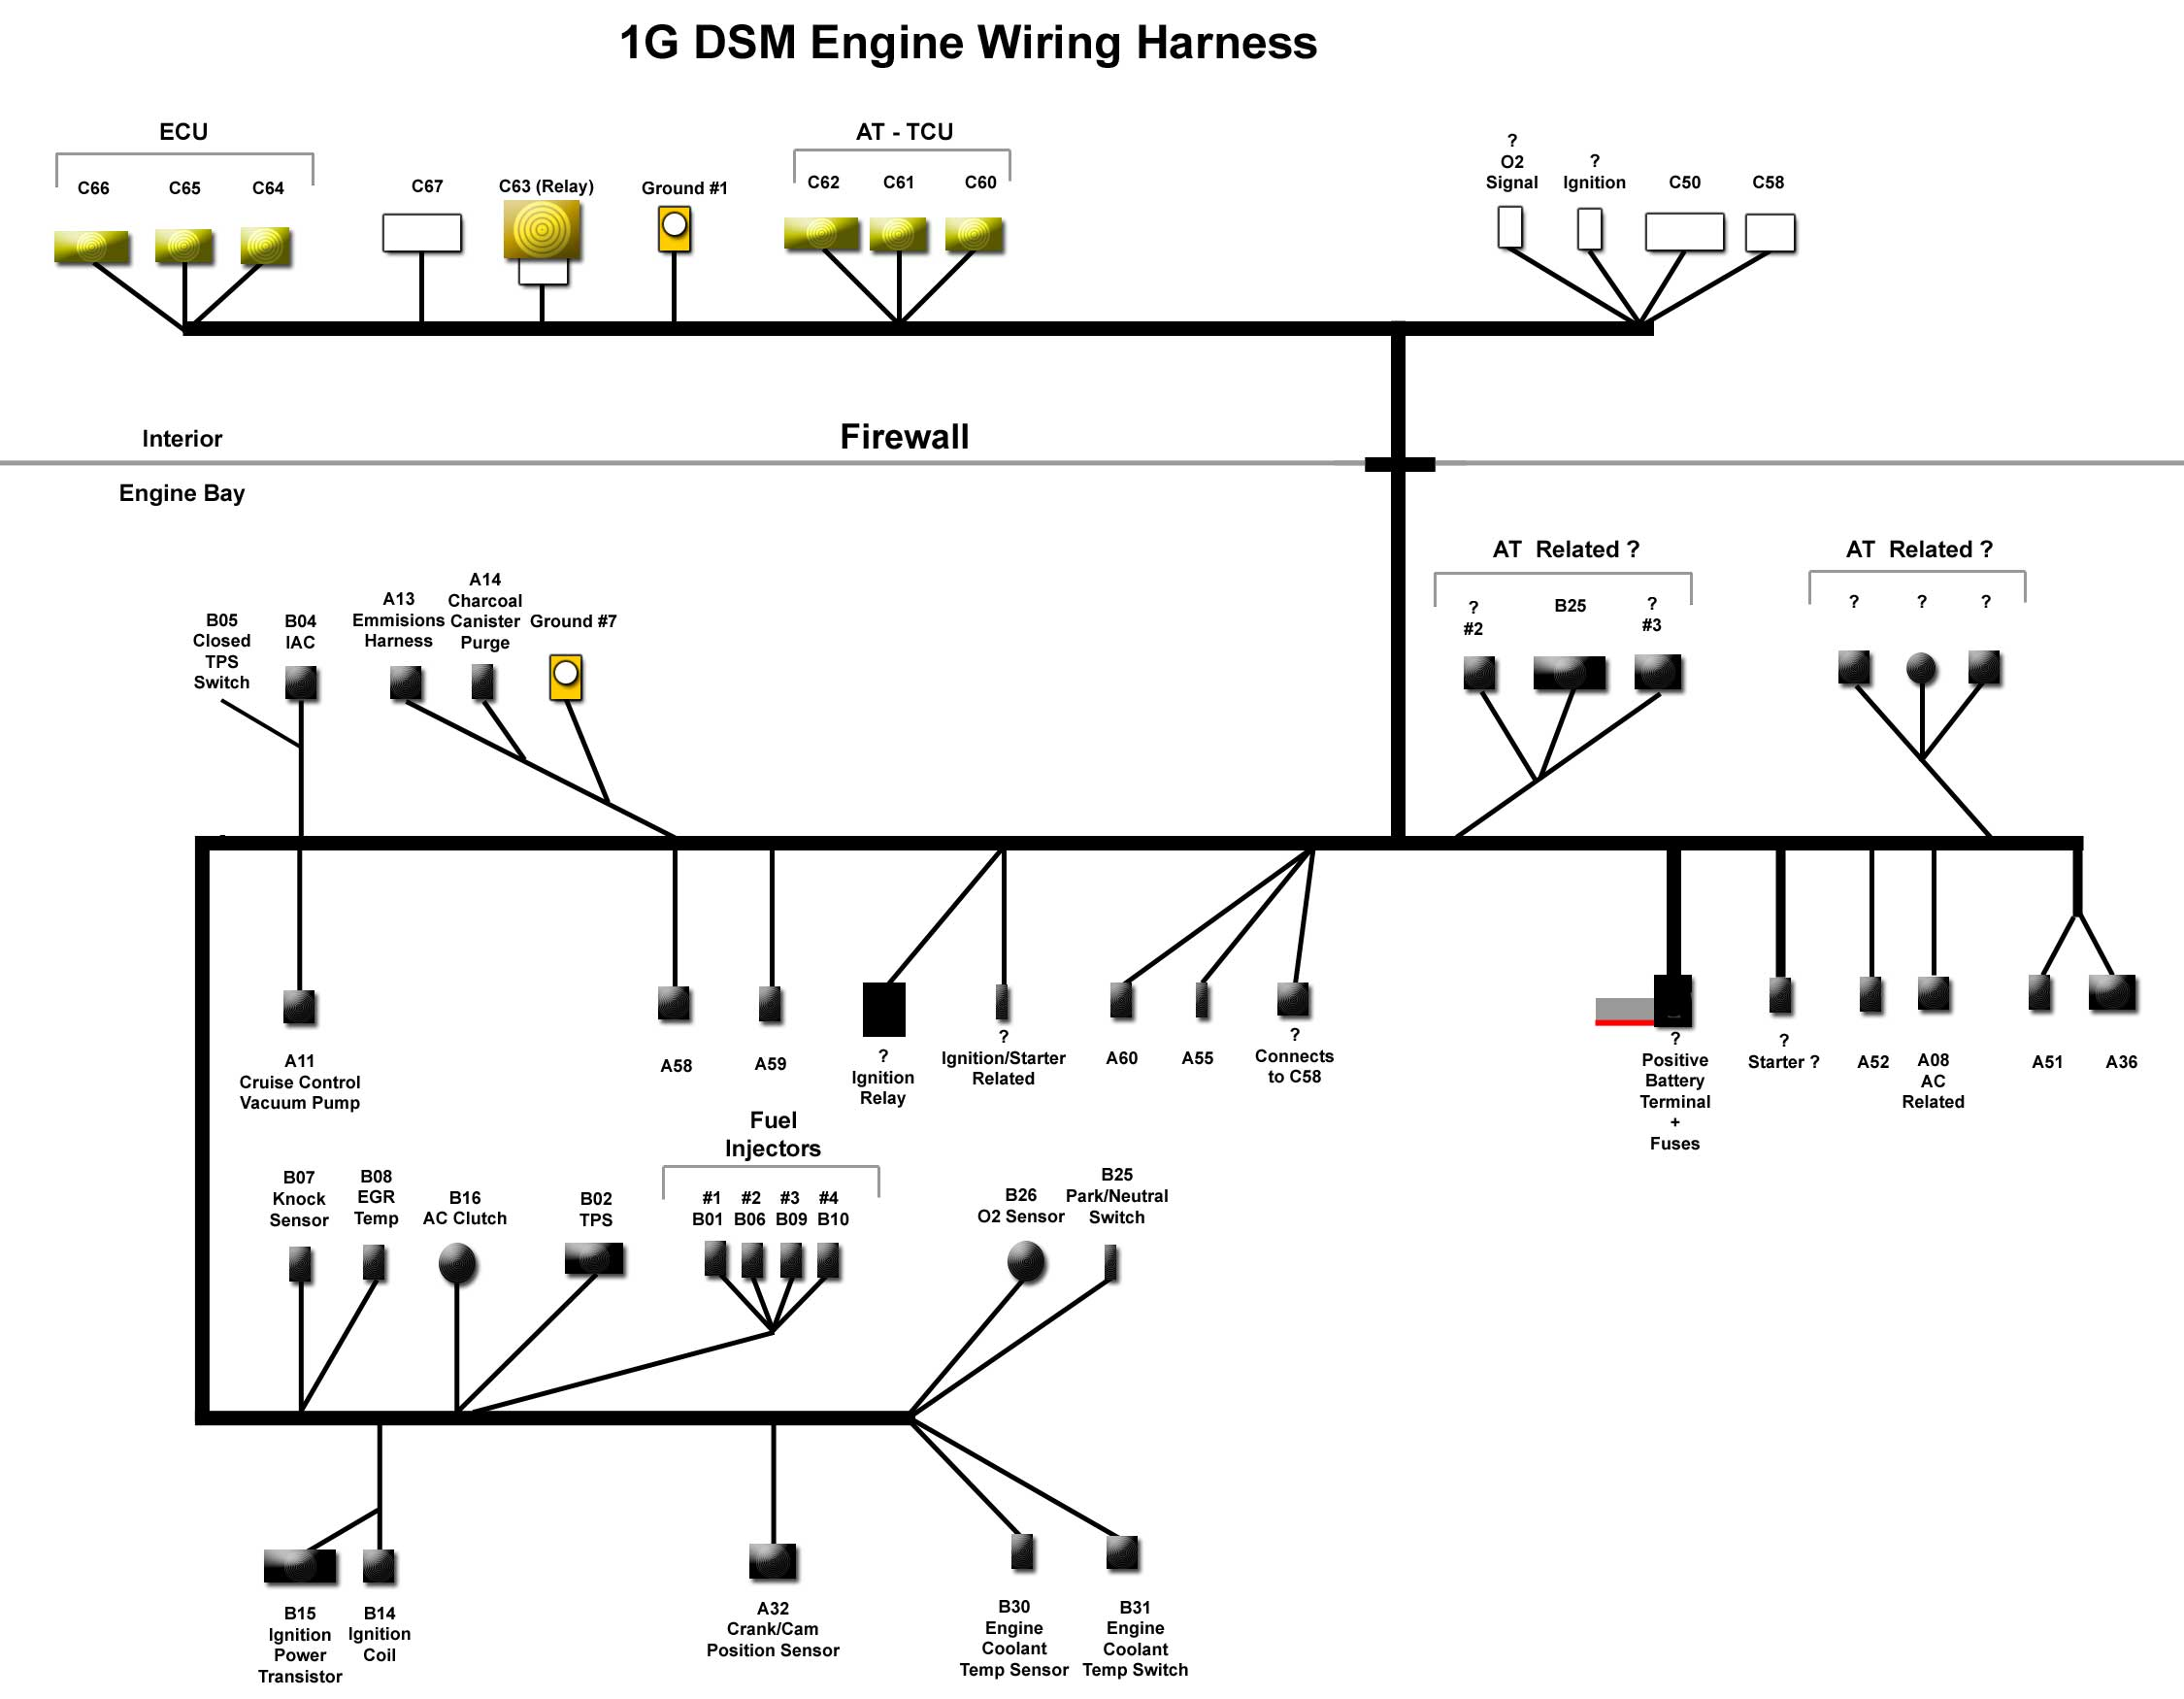 1G DSM EngineHarness 1gb dsm 4g63 turbo wiring harness diagram wiring harness diagram at sewacar.co